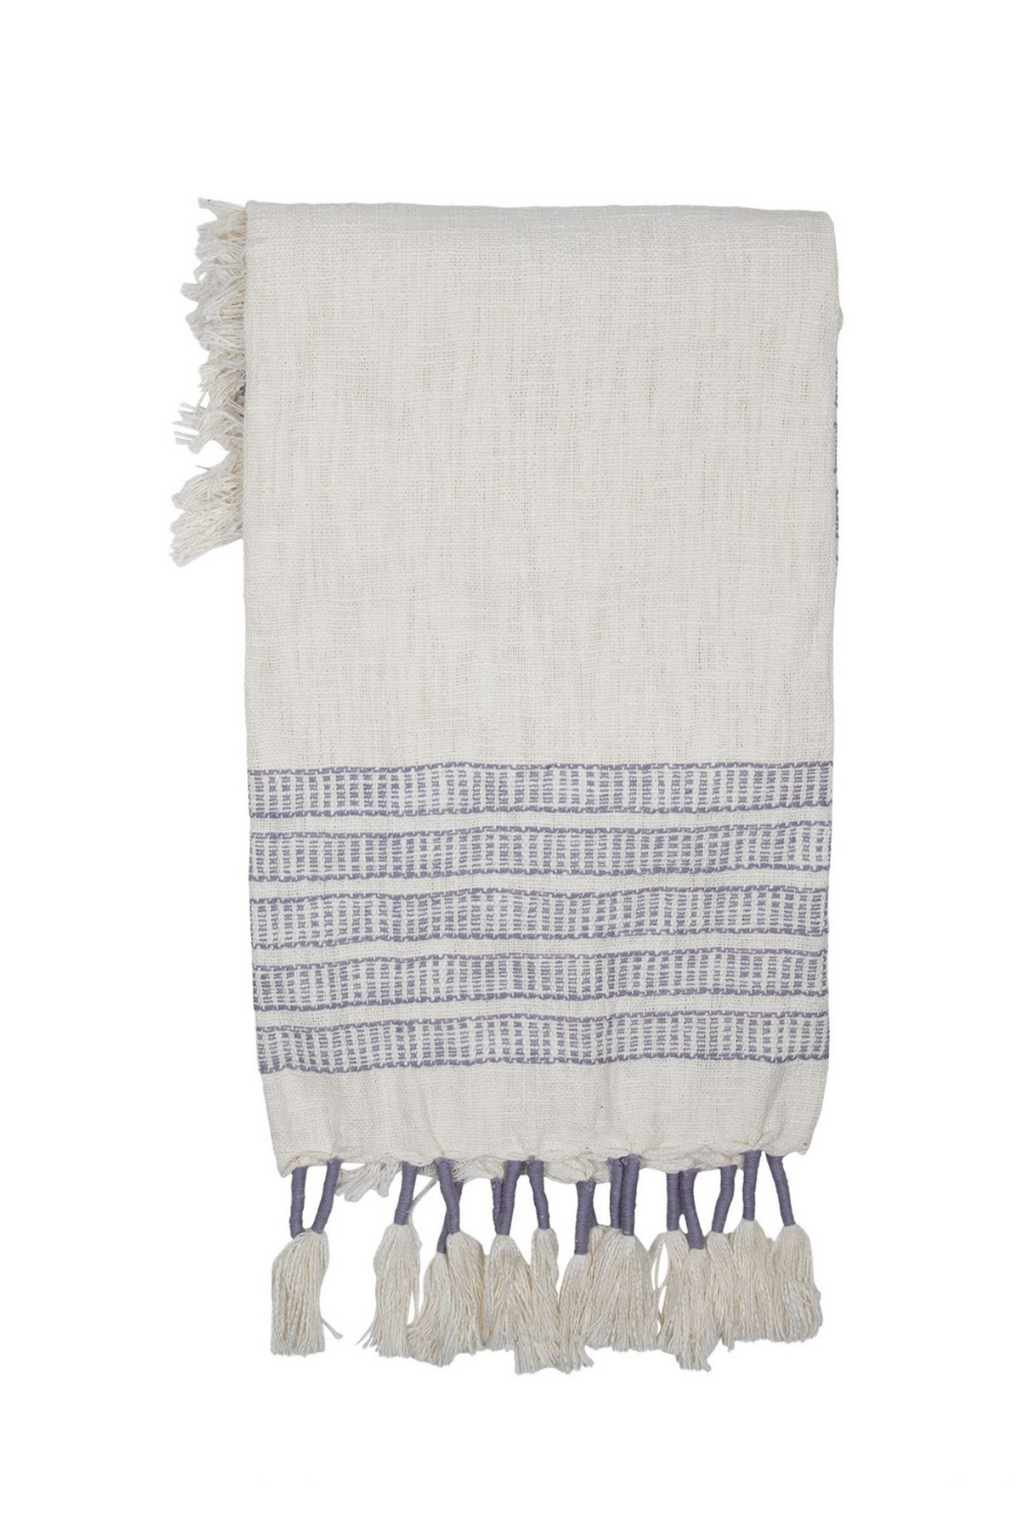 Foreside Home & Garden Hand Woven Leila Throw